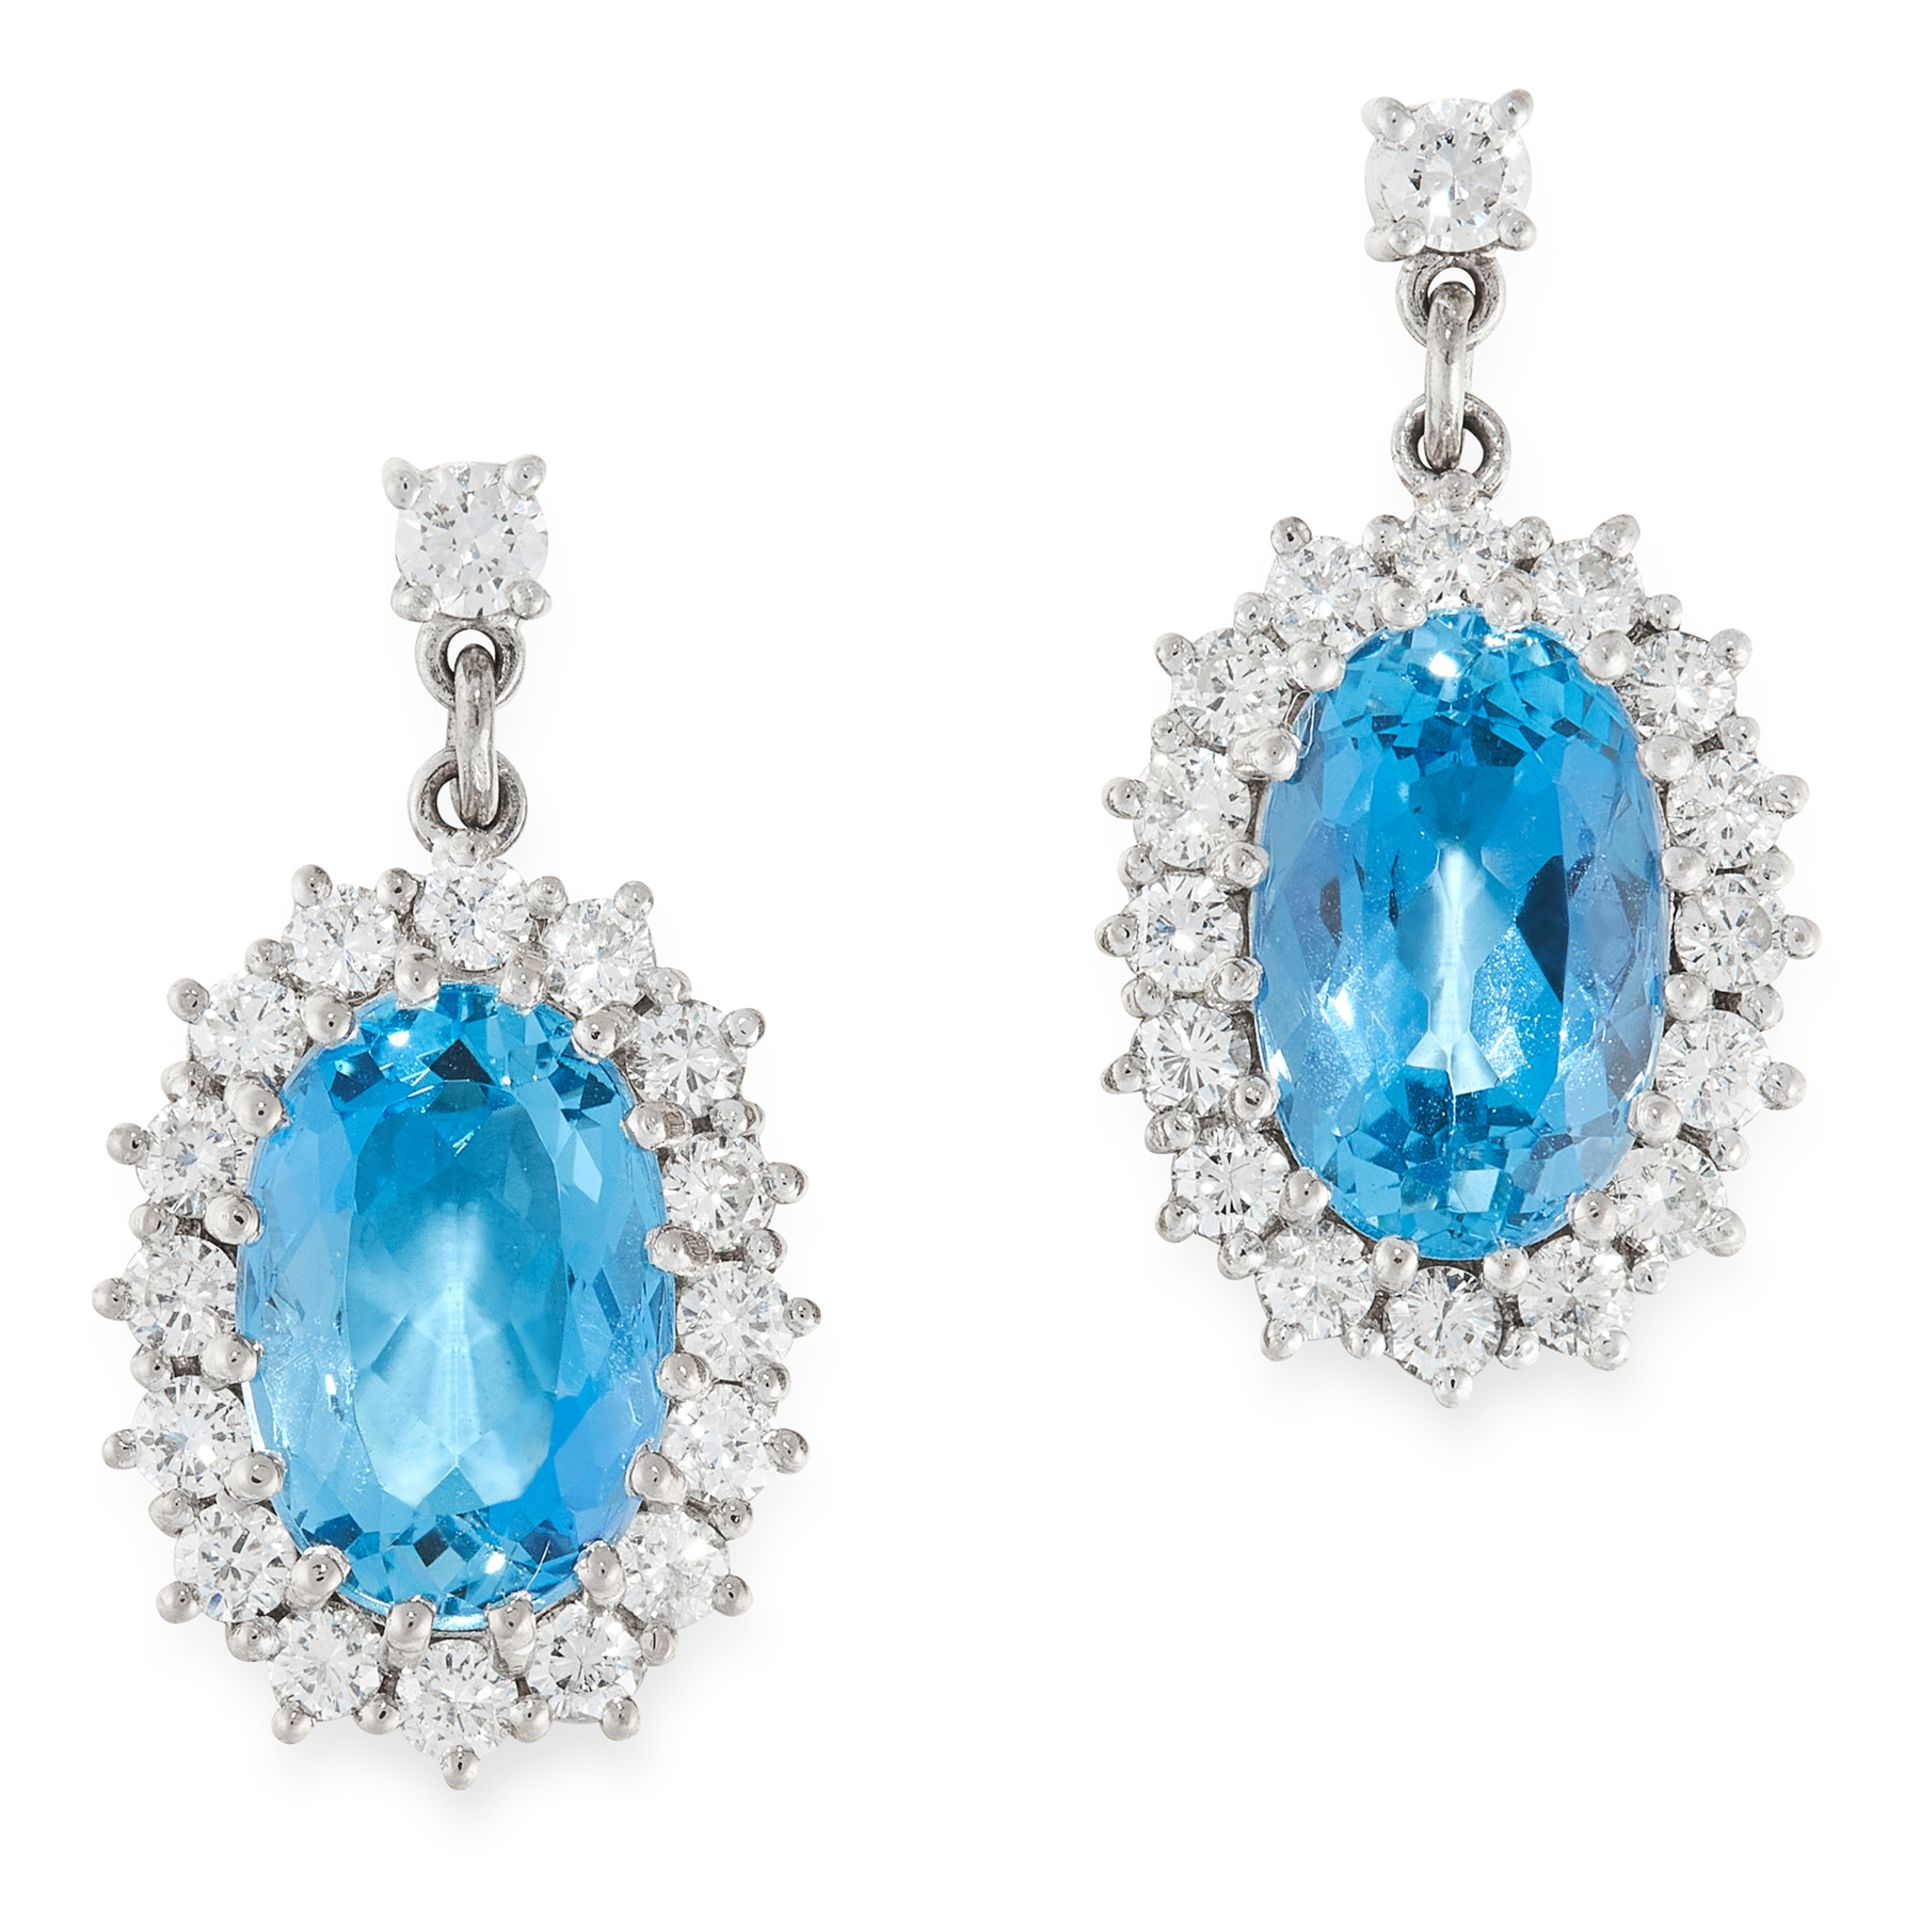 A PAIR OF AQUAMARINE AND DIAMOND EARRINGS in 18ct white gold, each set with an oval cut aquamarine